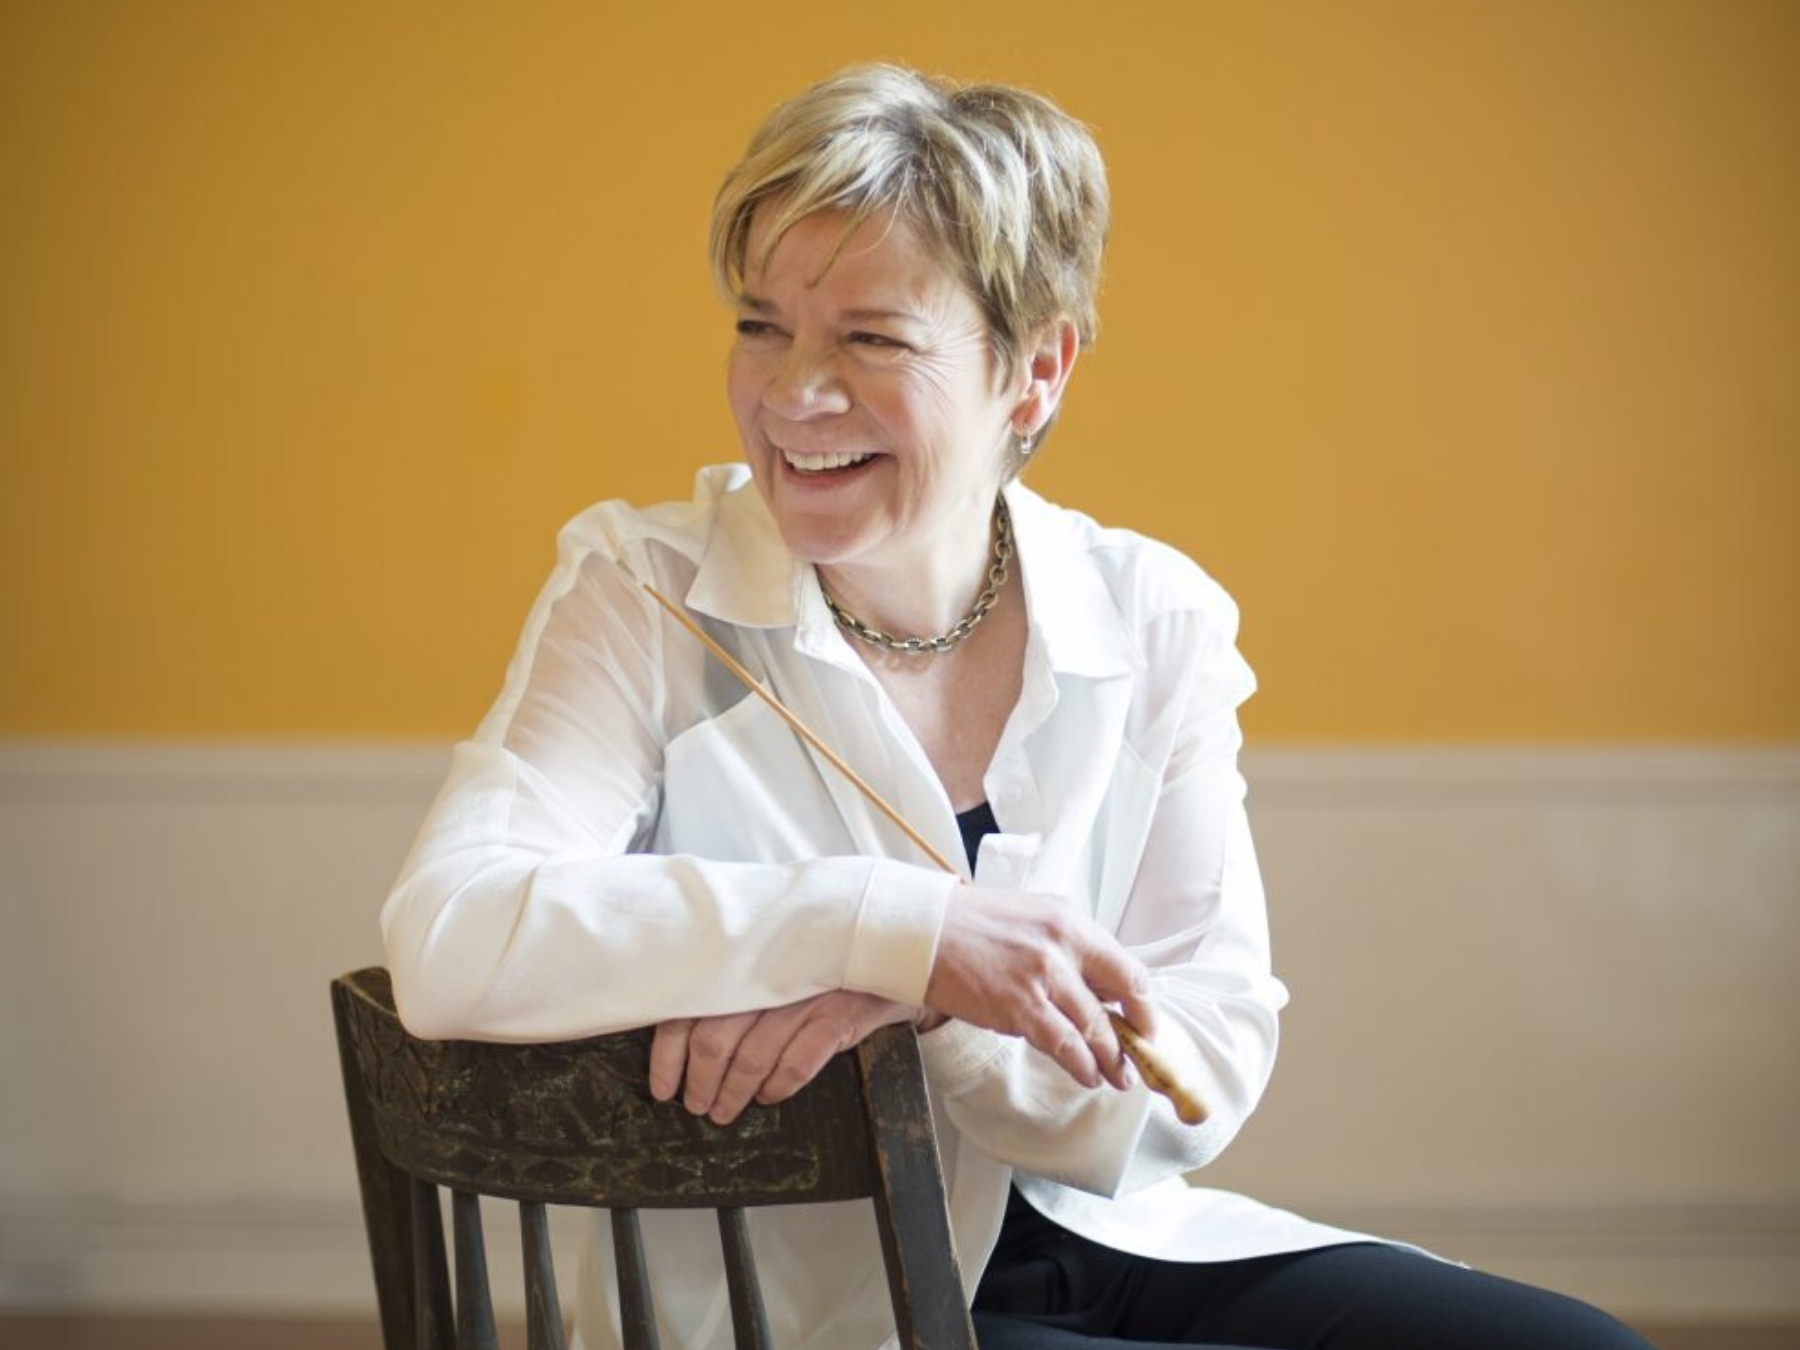 photo of marin alsop smiling with baton